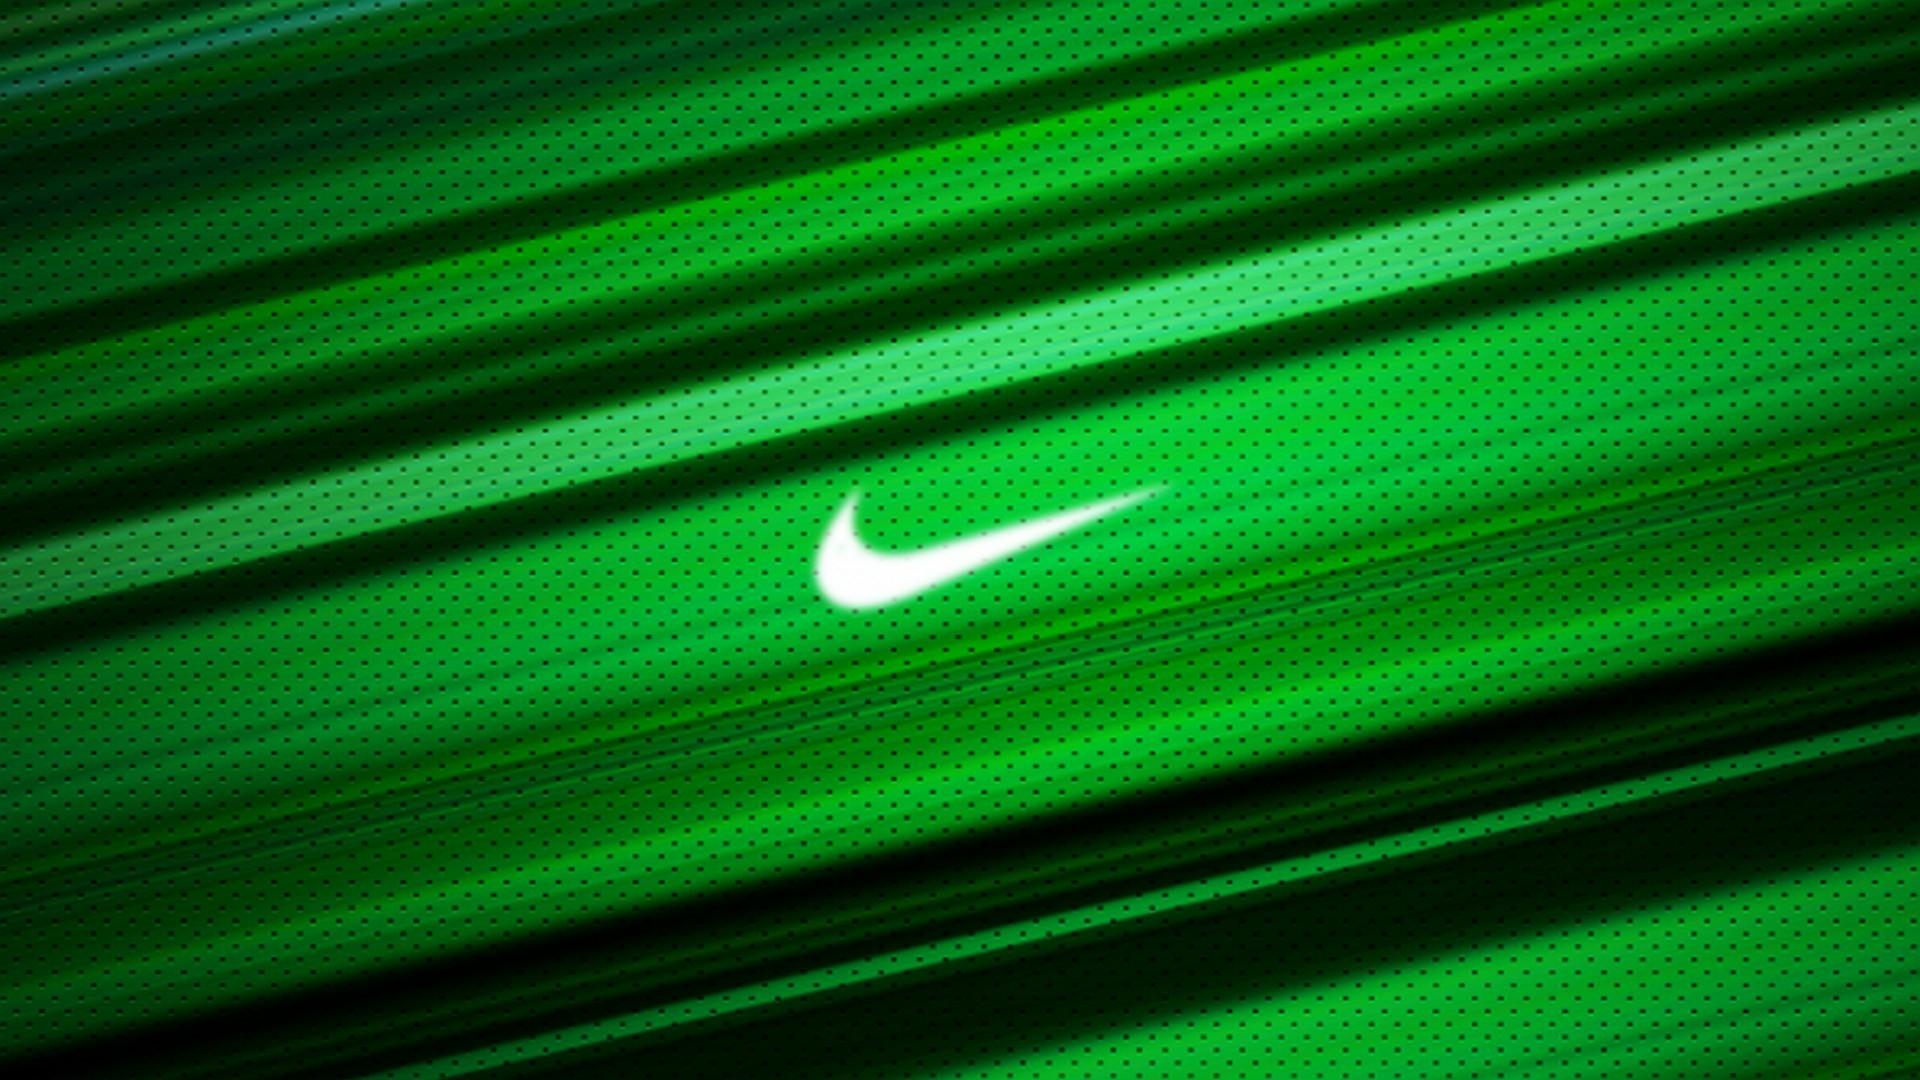 1920x1080 Neon Green HD Backgrounds with image resolution  pixel. You can  make this wallpaper for